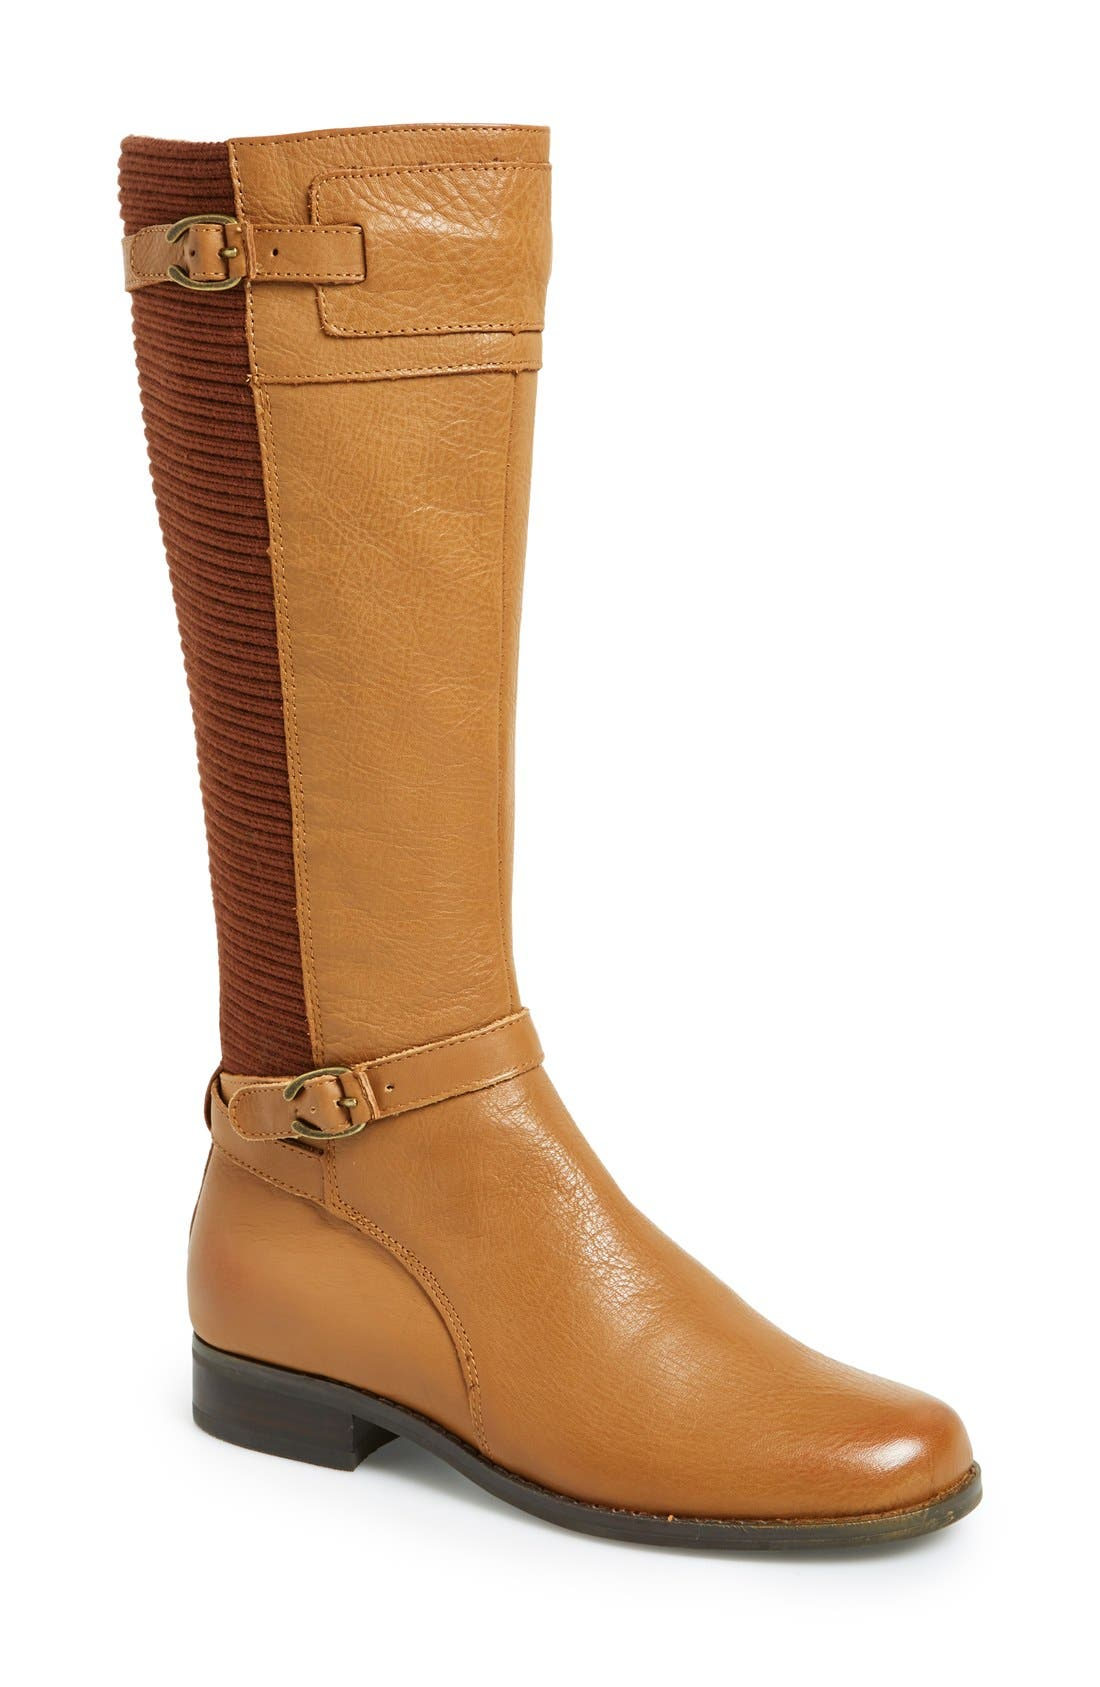 Main Image - Aetrex 'Chelsea' Riding Boot